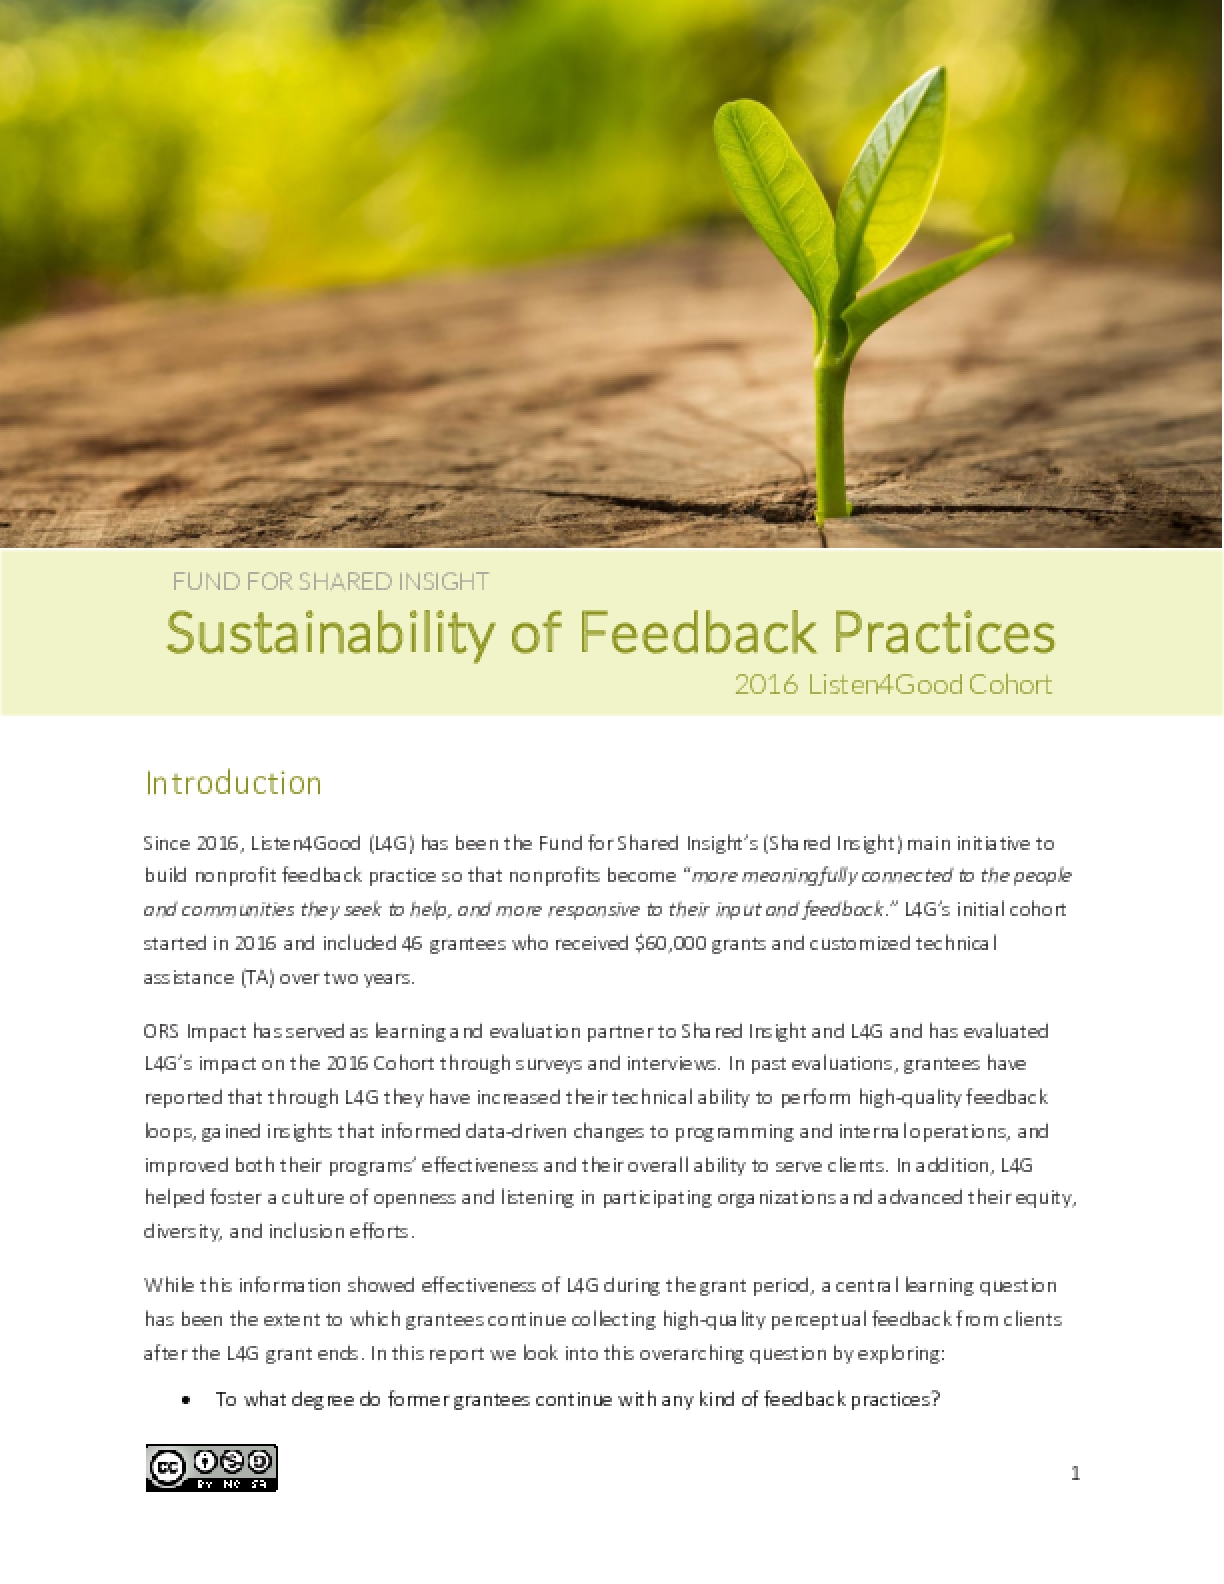 Sustainability of Feedback Practice: 2016 Listen4Good Cohort